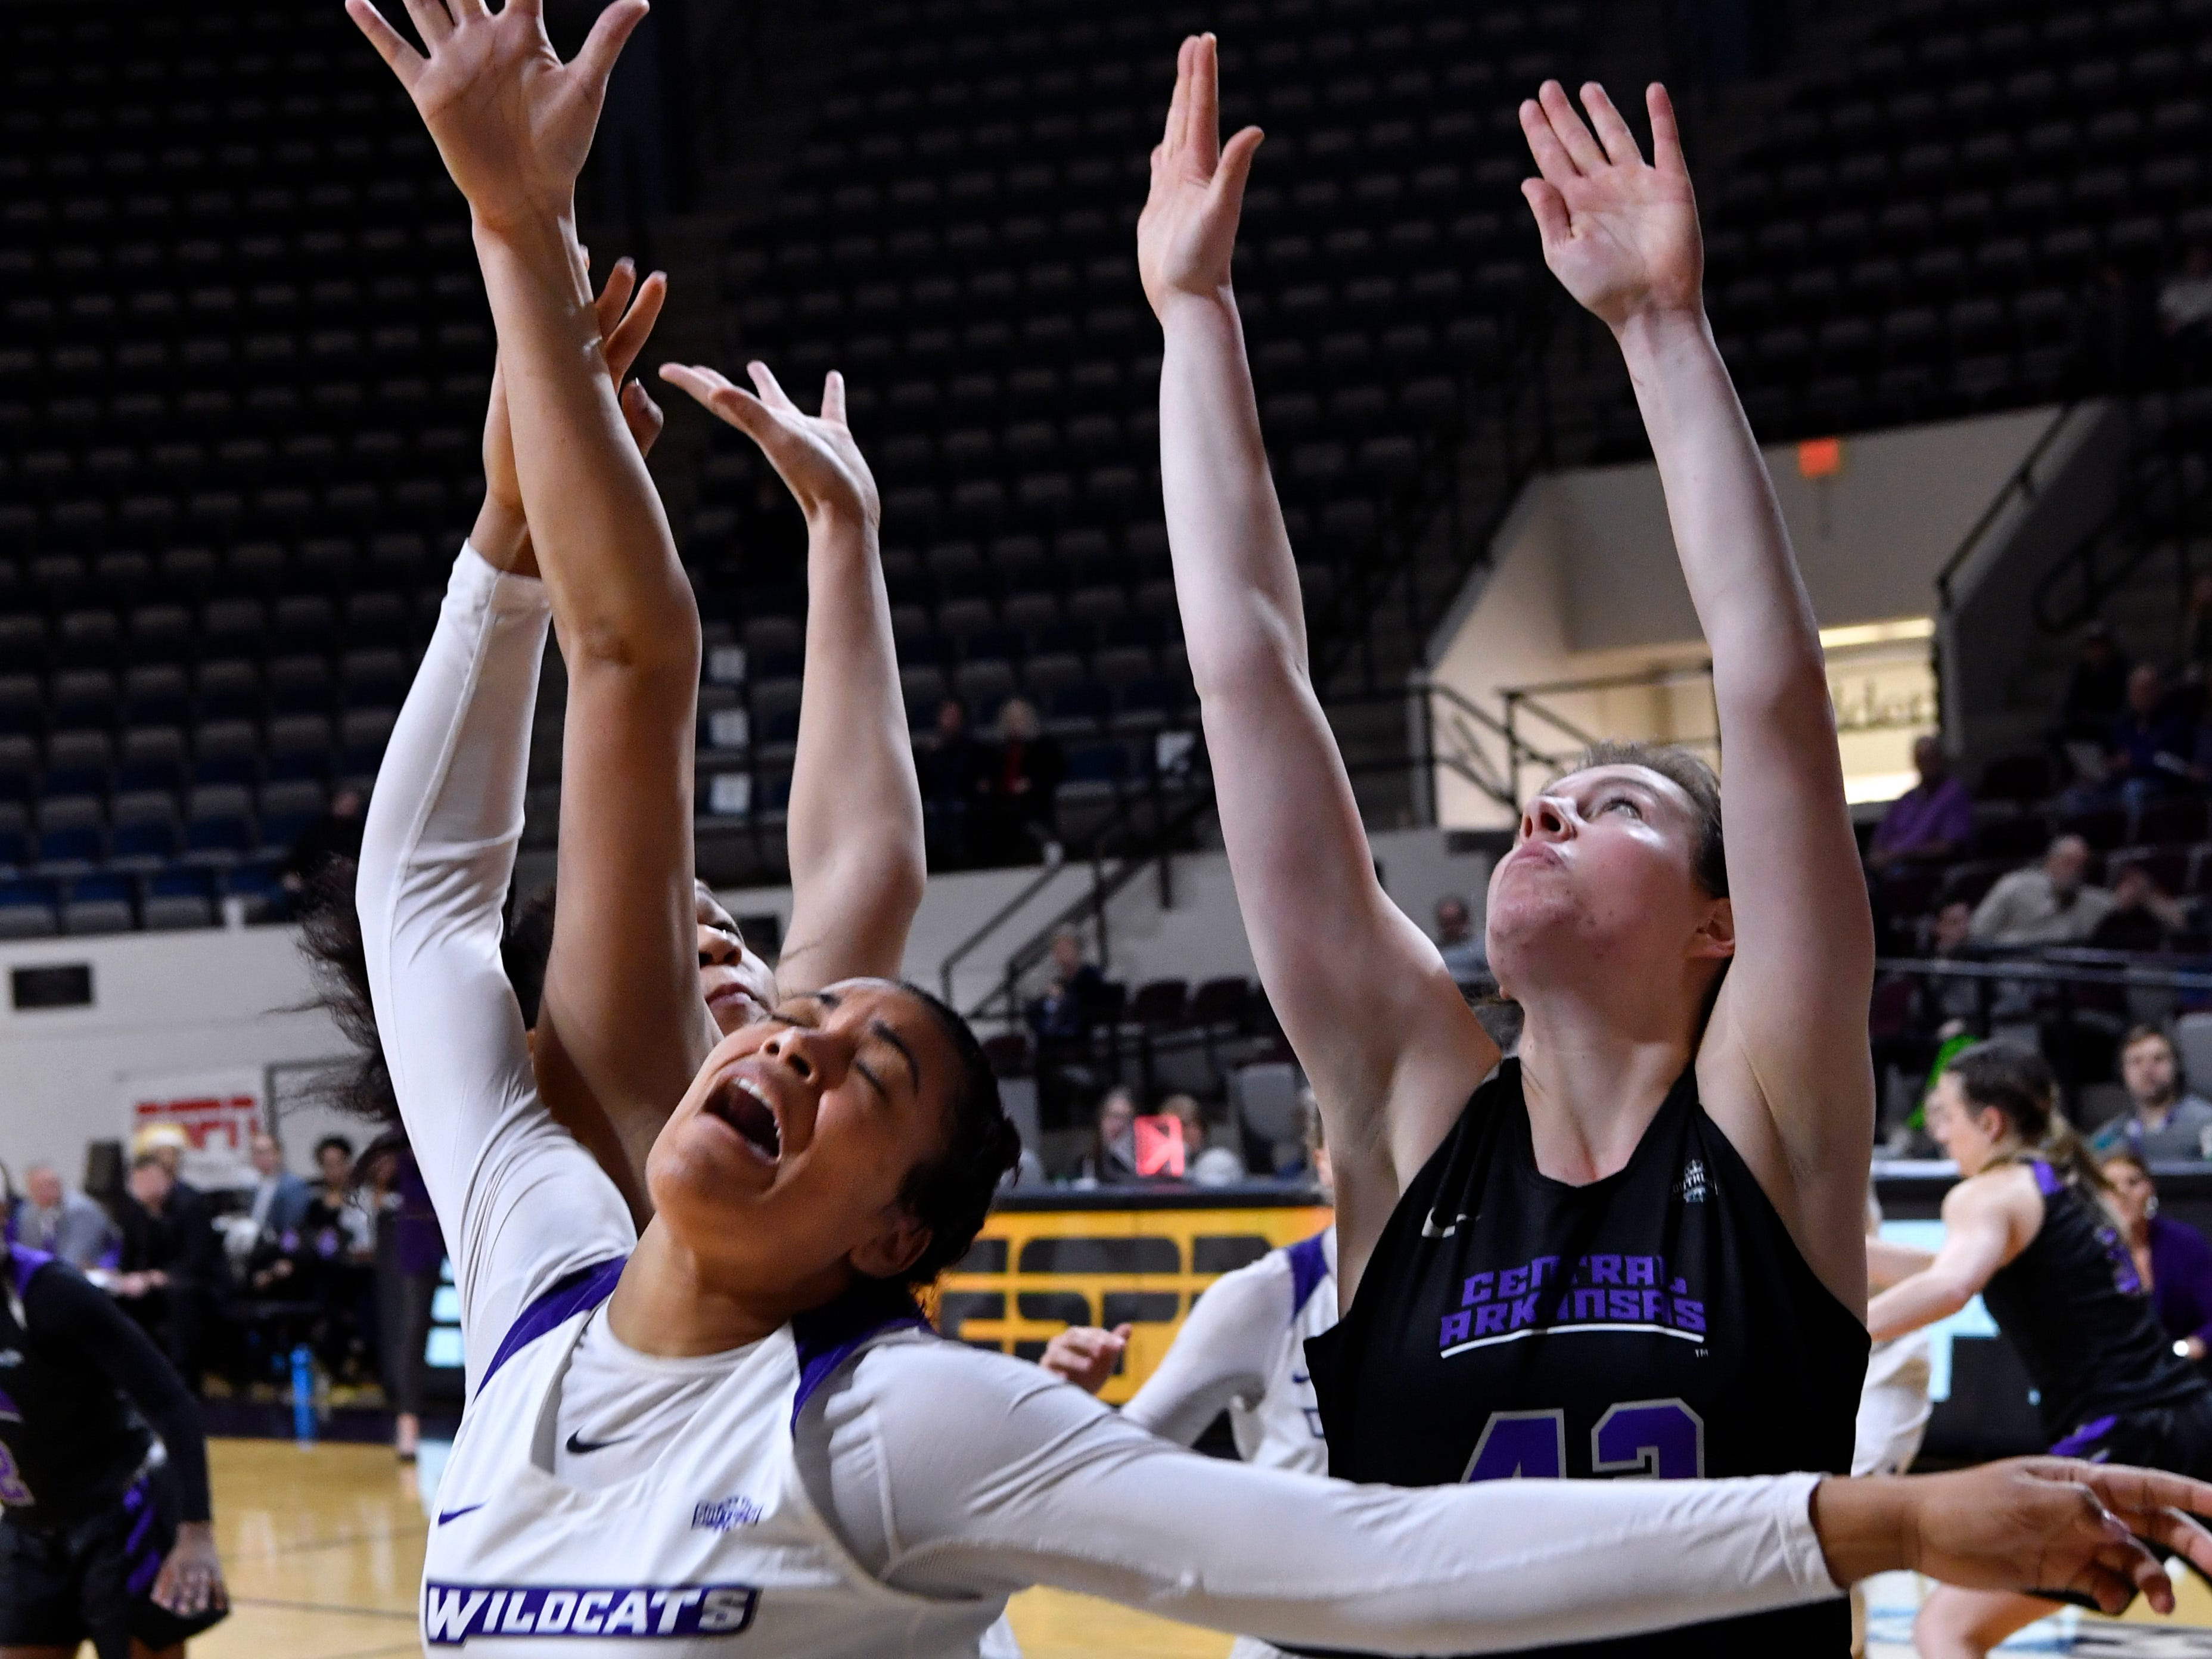 Alyssa Adams is fouled while trying for the basket during Abilene Christian University's women's basketball game against Central Arkansas Saturday Jan. 26, 2019. Final score was 77-70, ACU.